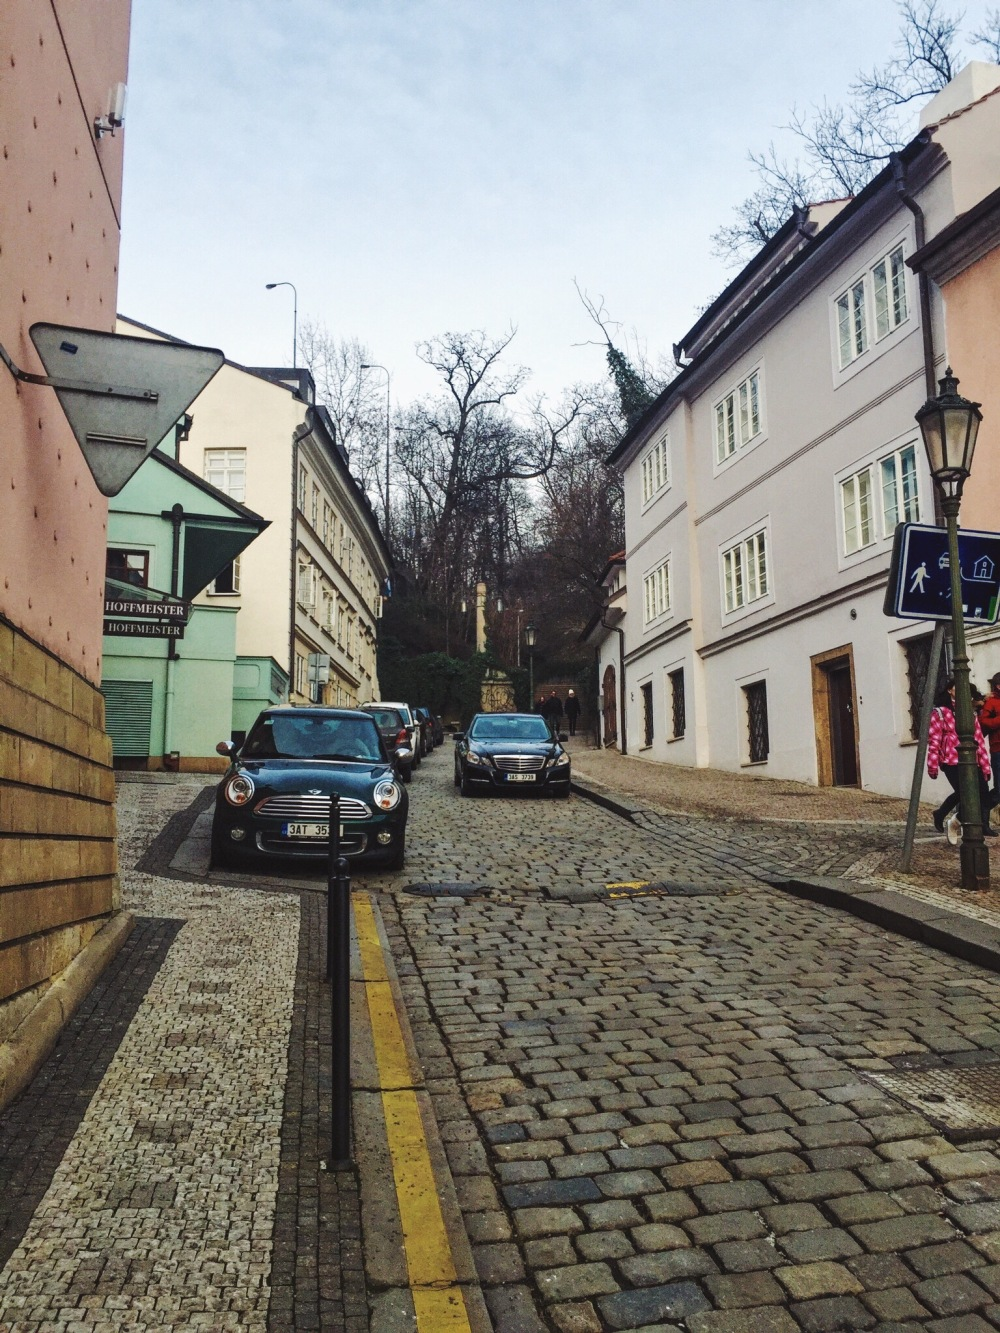 Streets across the Prague river